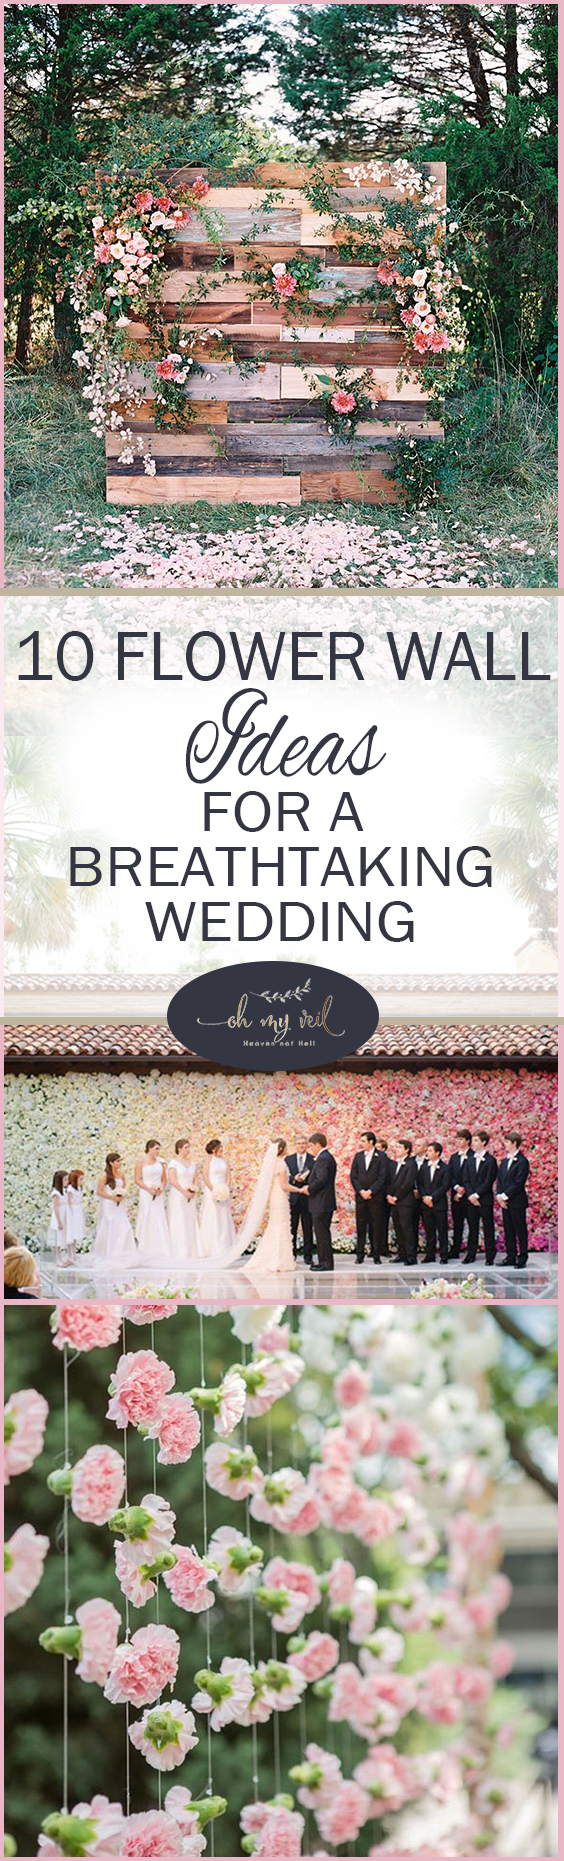 10 Flower Wall Ideas for a Breathtaking Wedding| Flowers for Weddings, Flower Decor, Flower Wall DIY, Wedding Flower Wall, Wedding, DIY Weddings #DIYWedding #Flowers #Wedding #DreamWedding